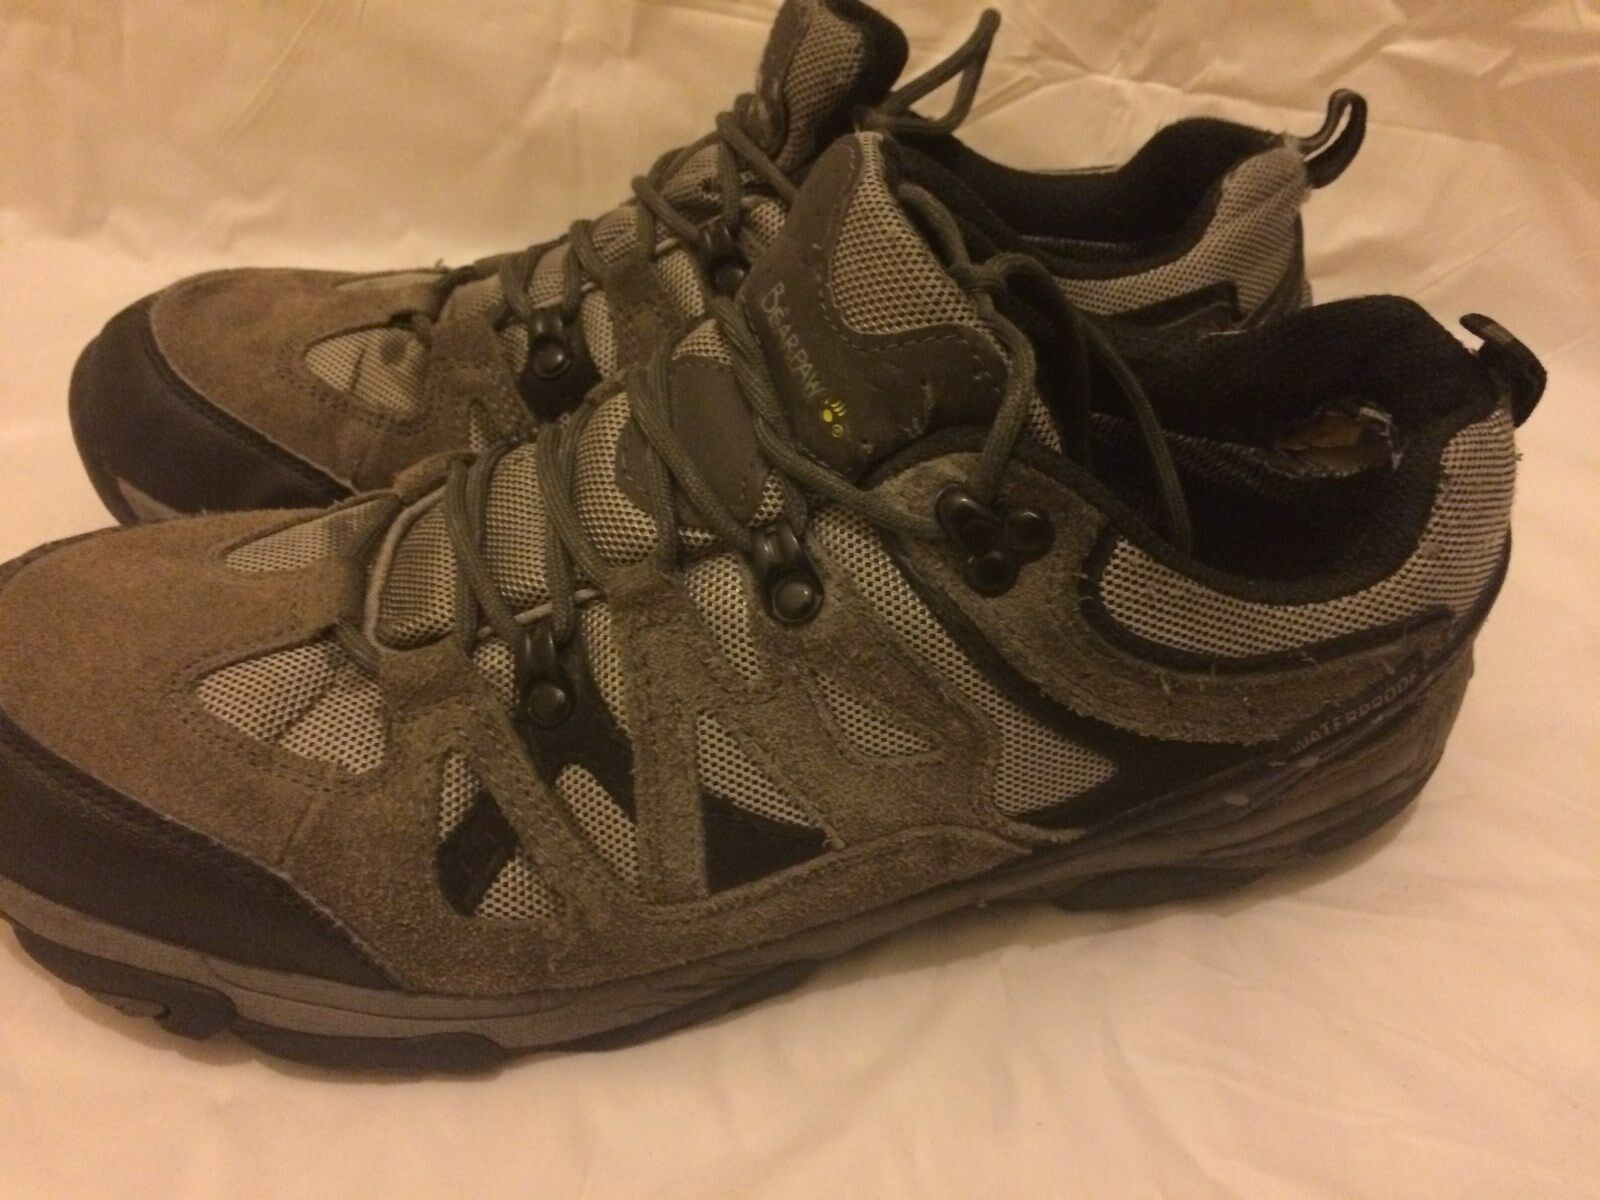 Bear Paw Hiking Men's Shoes Men's Hiking Size 11.5 8027c8